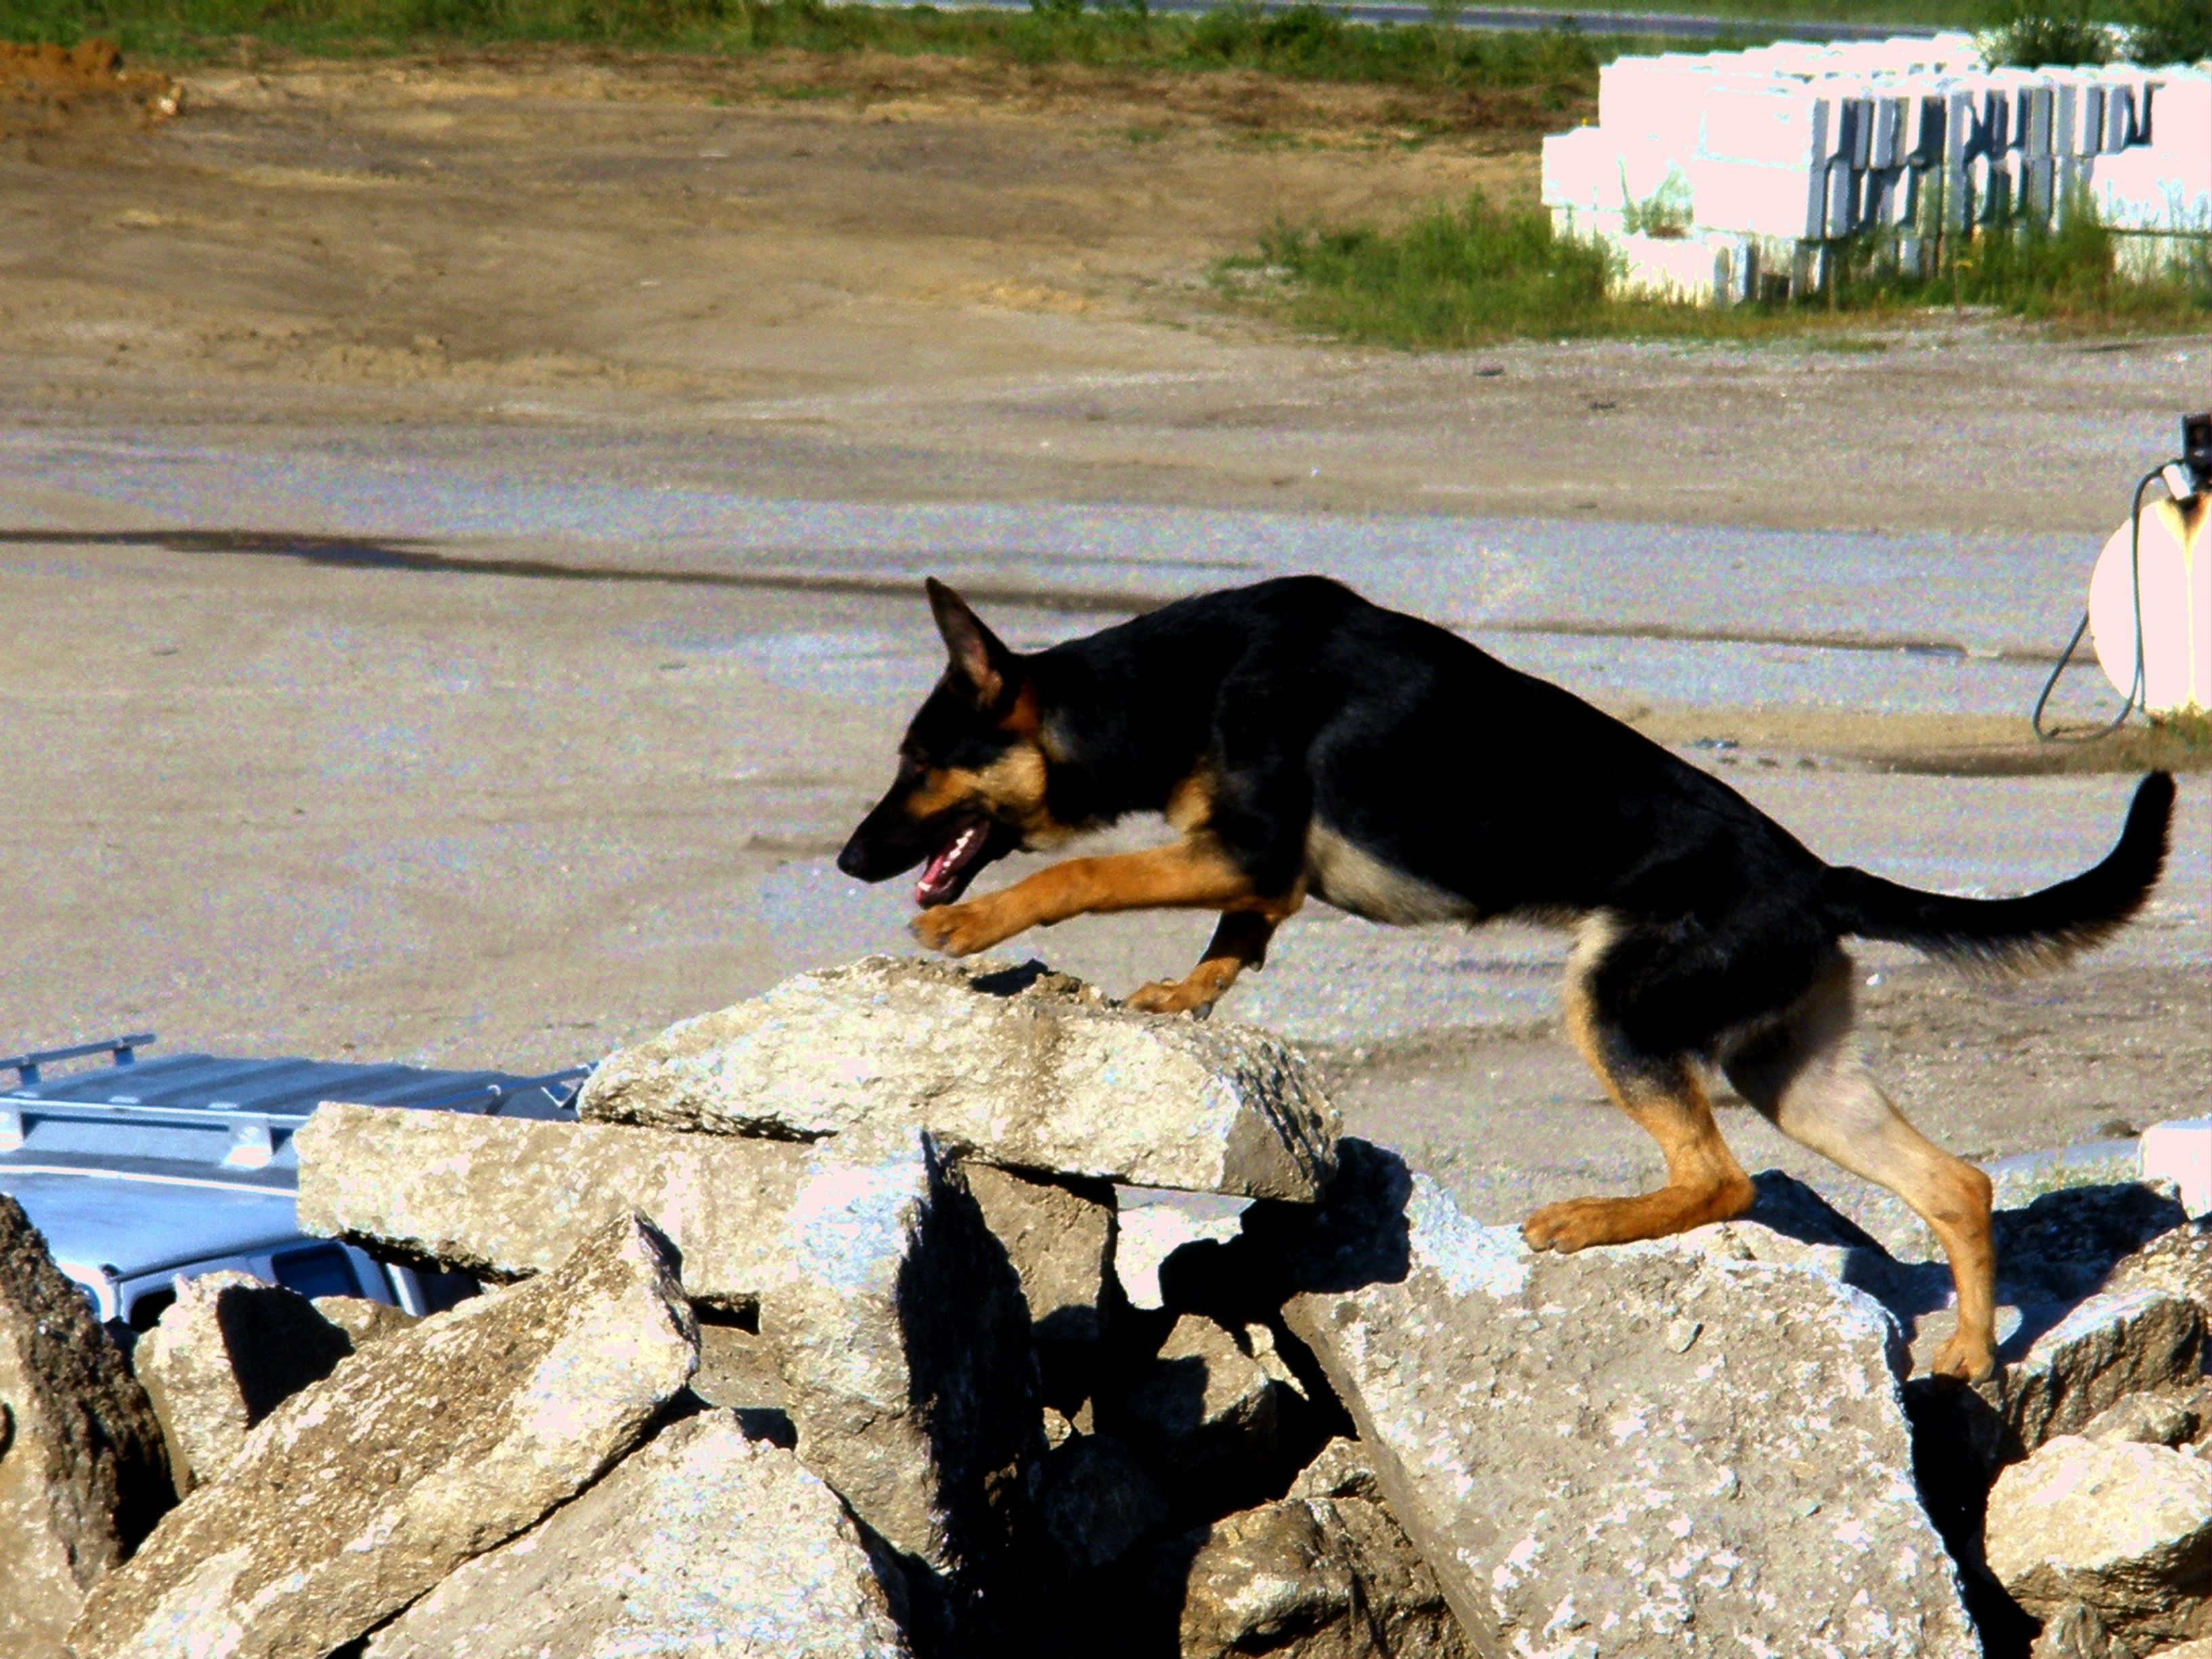 In September, dog and handler traveled to Iowa and